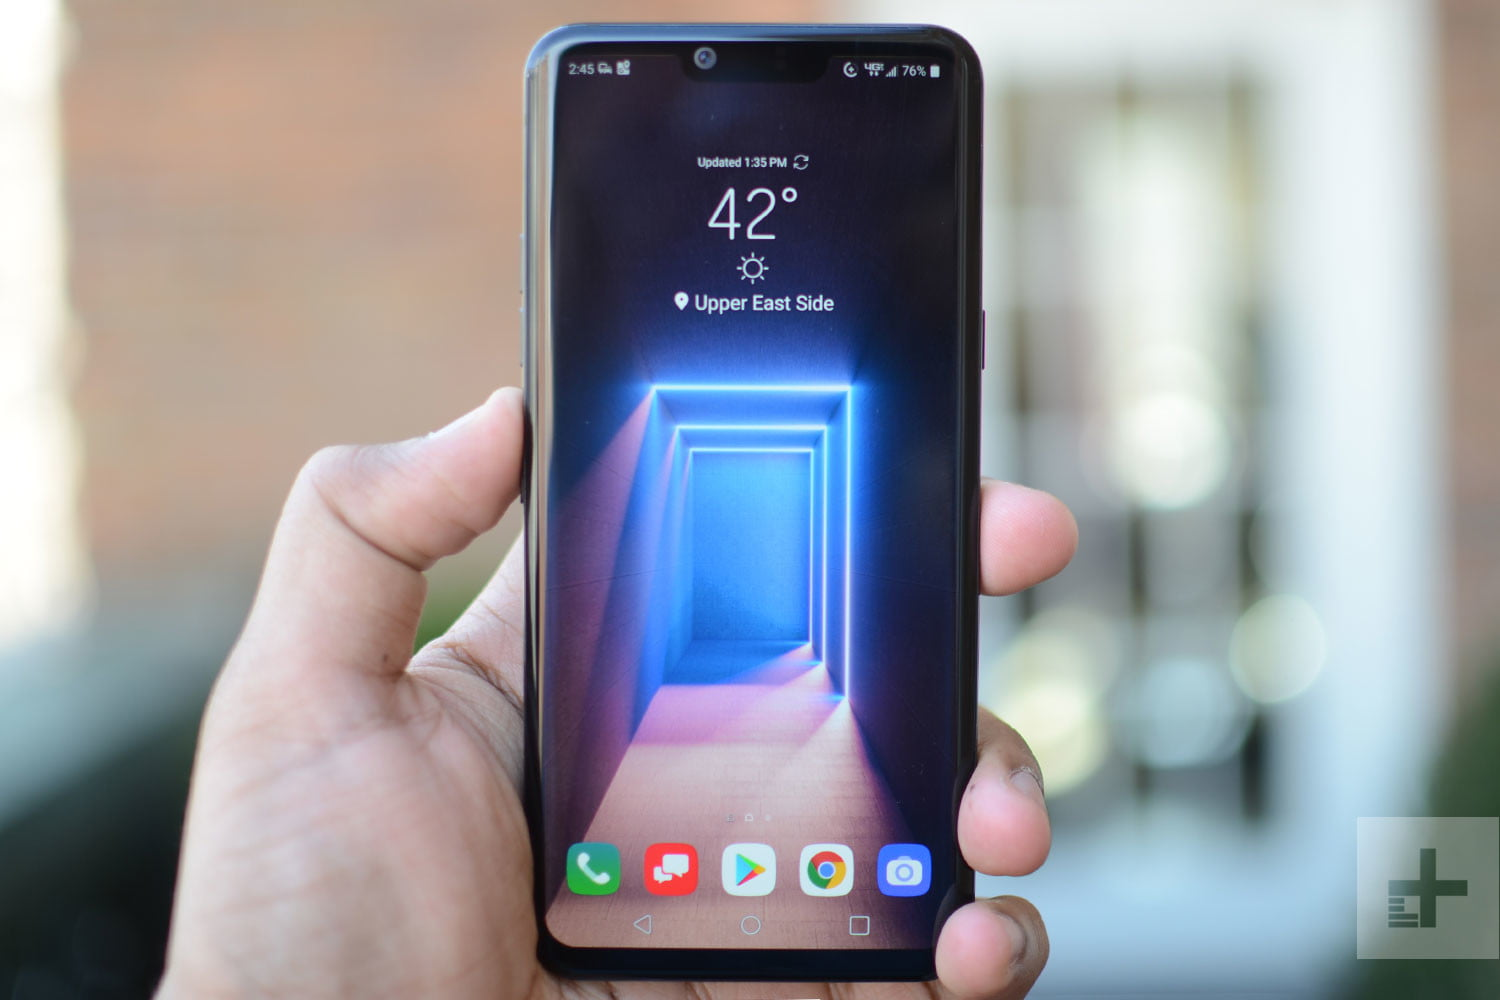 LG G8 ThinQ: News, Specs, Price, Availability And More | Digital Trends